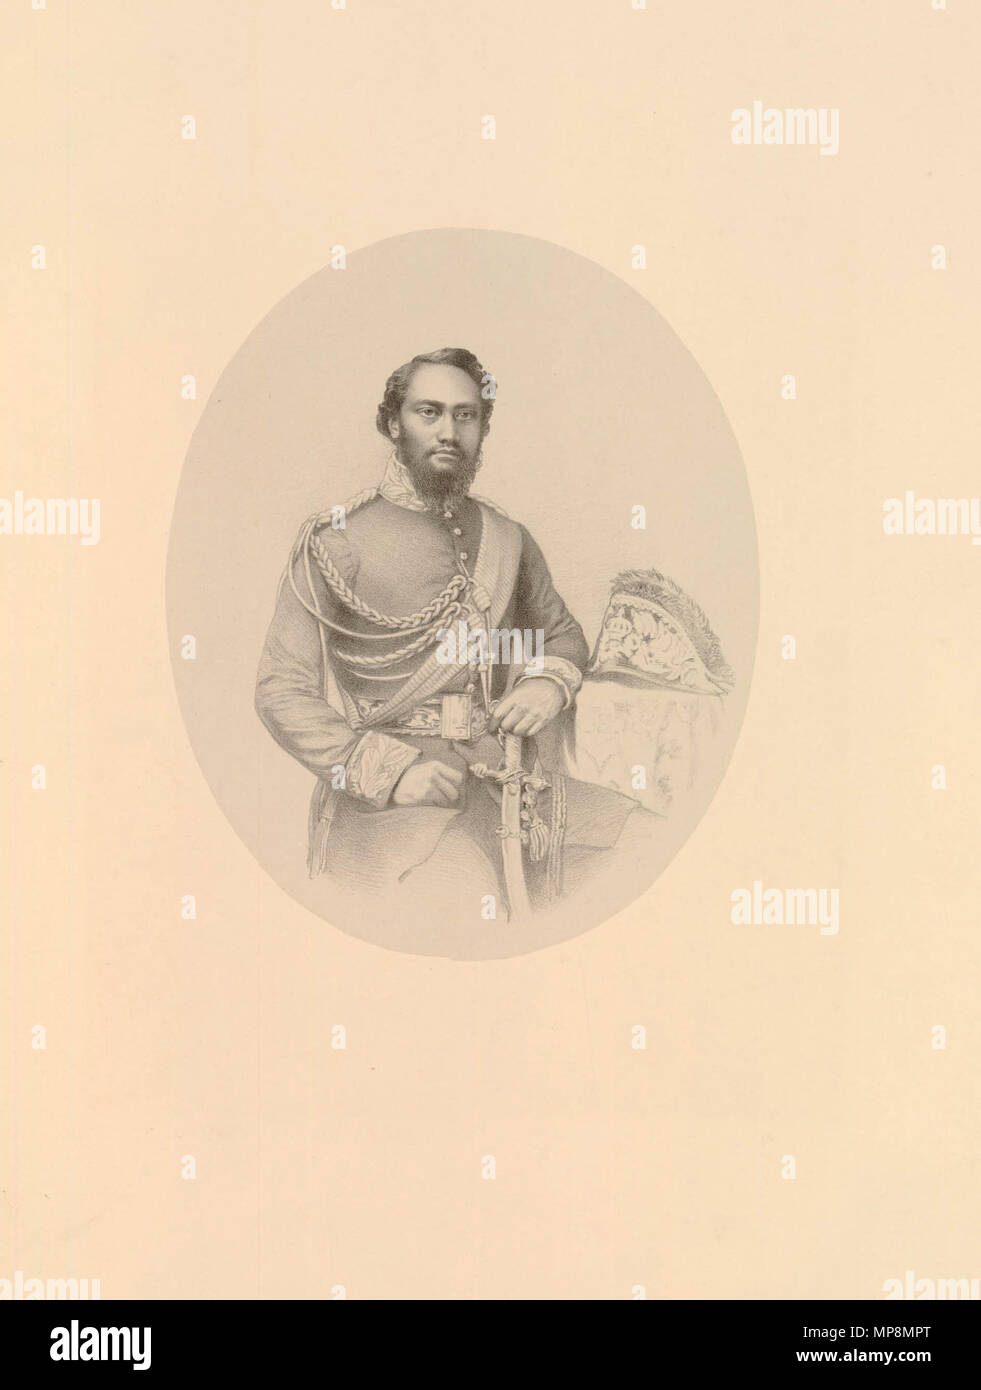 . English: King Kamehameha IV by Richard James Lane, printed by M & N Hanhart, lithograph, 1861. circa 1861.   Richard James Lane (1800–1872)   Alternative names Richard J. Lane  Description English engraver and lithographer  Date of birth/death 16 February 1800 21 November 1872  Location of birth Berkeley Castle  Authority control  : Q7326816 VIAF:59348682 ISNI:0000 0000 6658 4871 ULAN:500120153 LCCN:n81054202 SUDOC:119740117 WorldCat    , printed by M & N Hanhart 756 Kamehameha IV by Richard James Lane, lithograph, 1861 - Stock Image